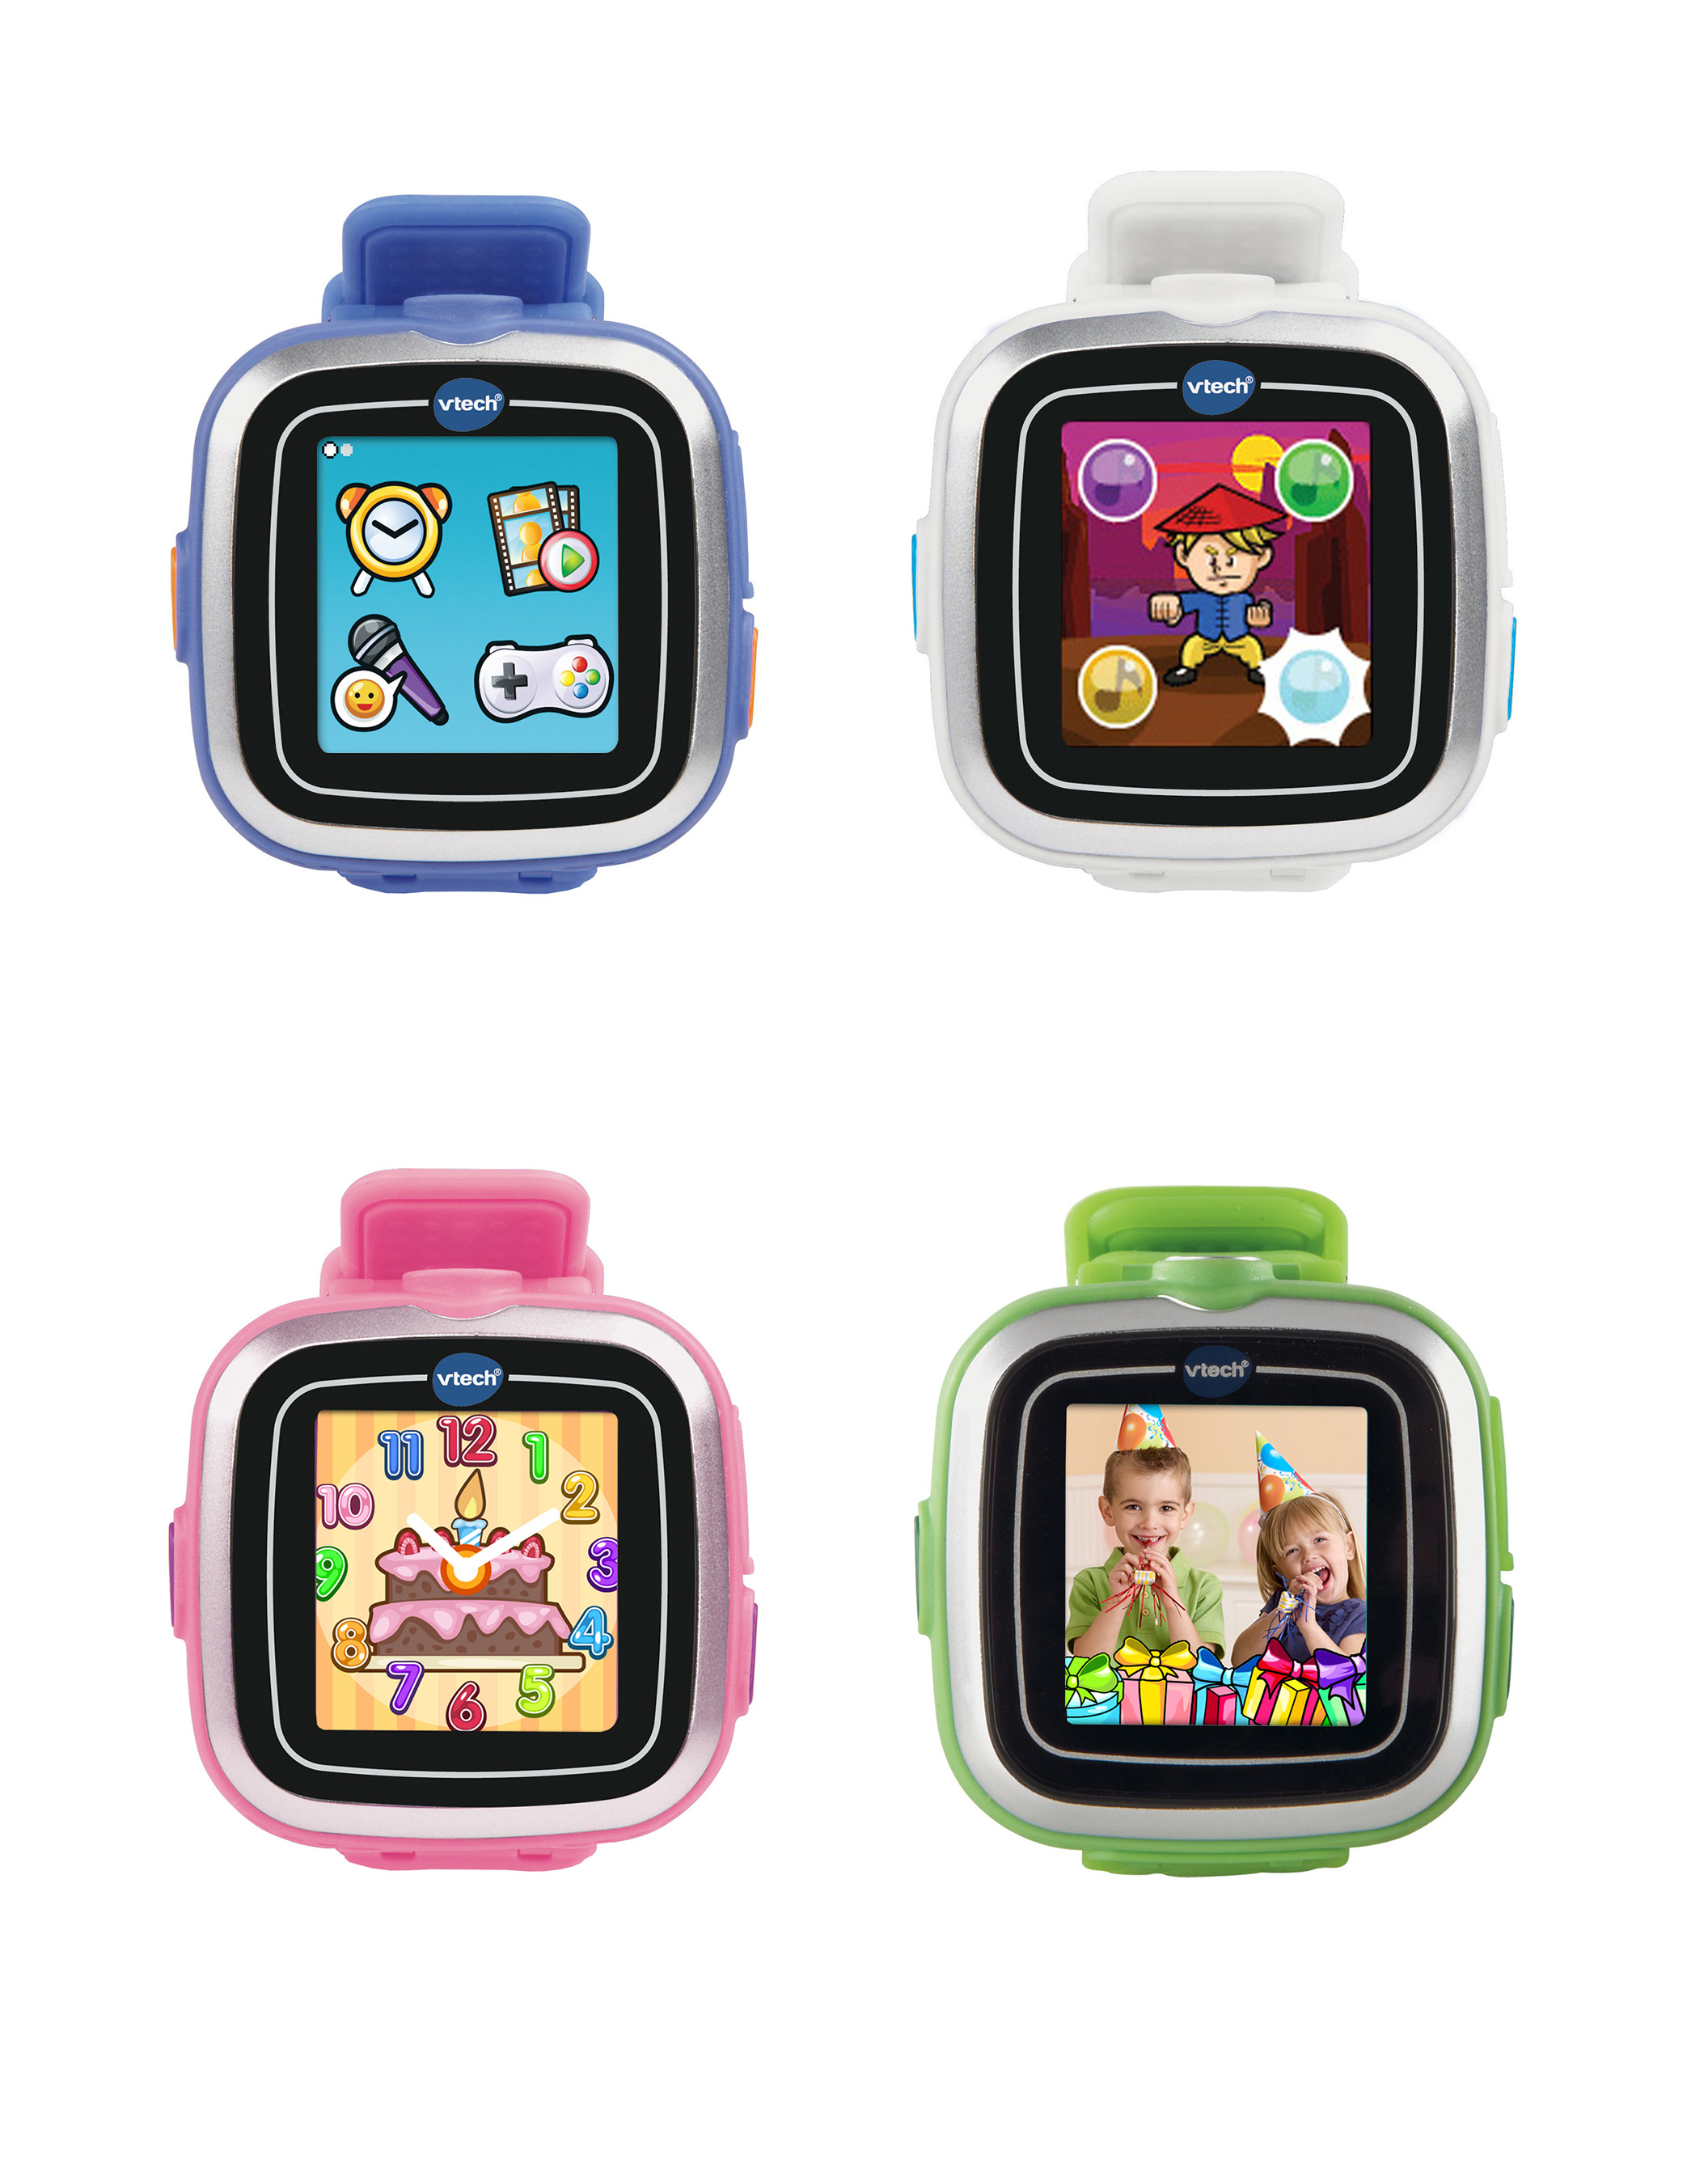 http://www.multivu.com/players/English/7107952-vtech-kidizoom-kids-smartwatch-wearable-technology/gallery/image/f65c3308-814a-4fcd-aec0-964502777fe2.HR.jpg